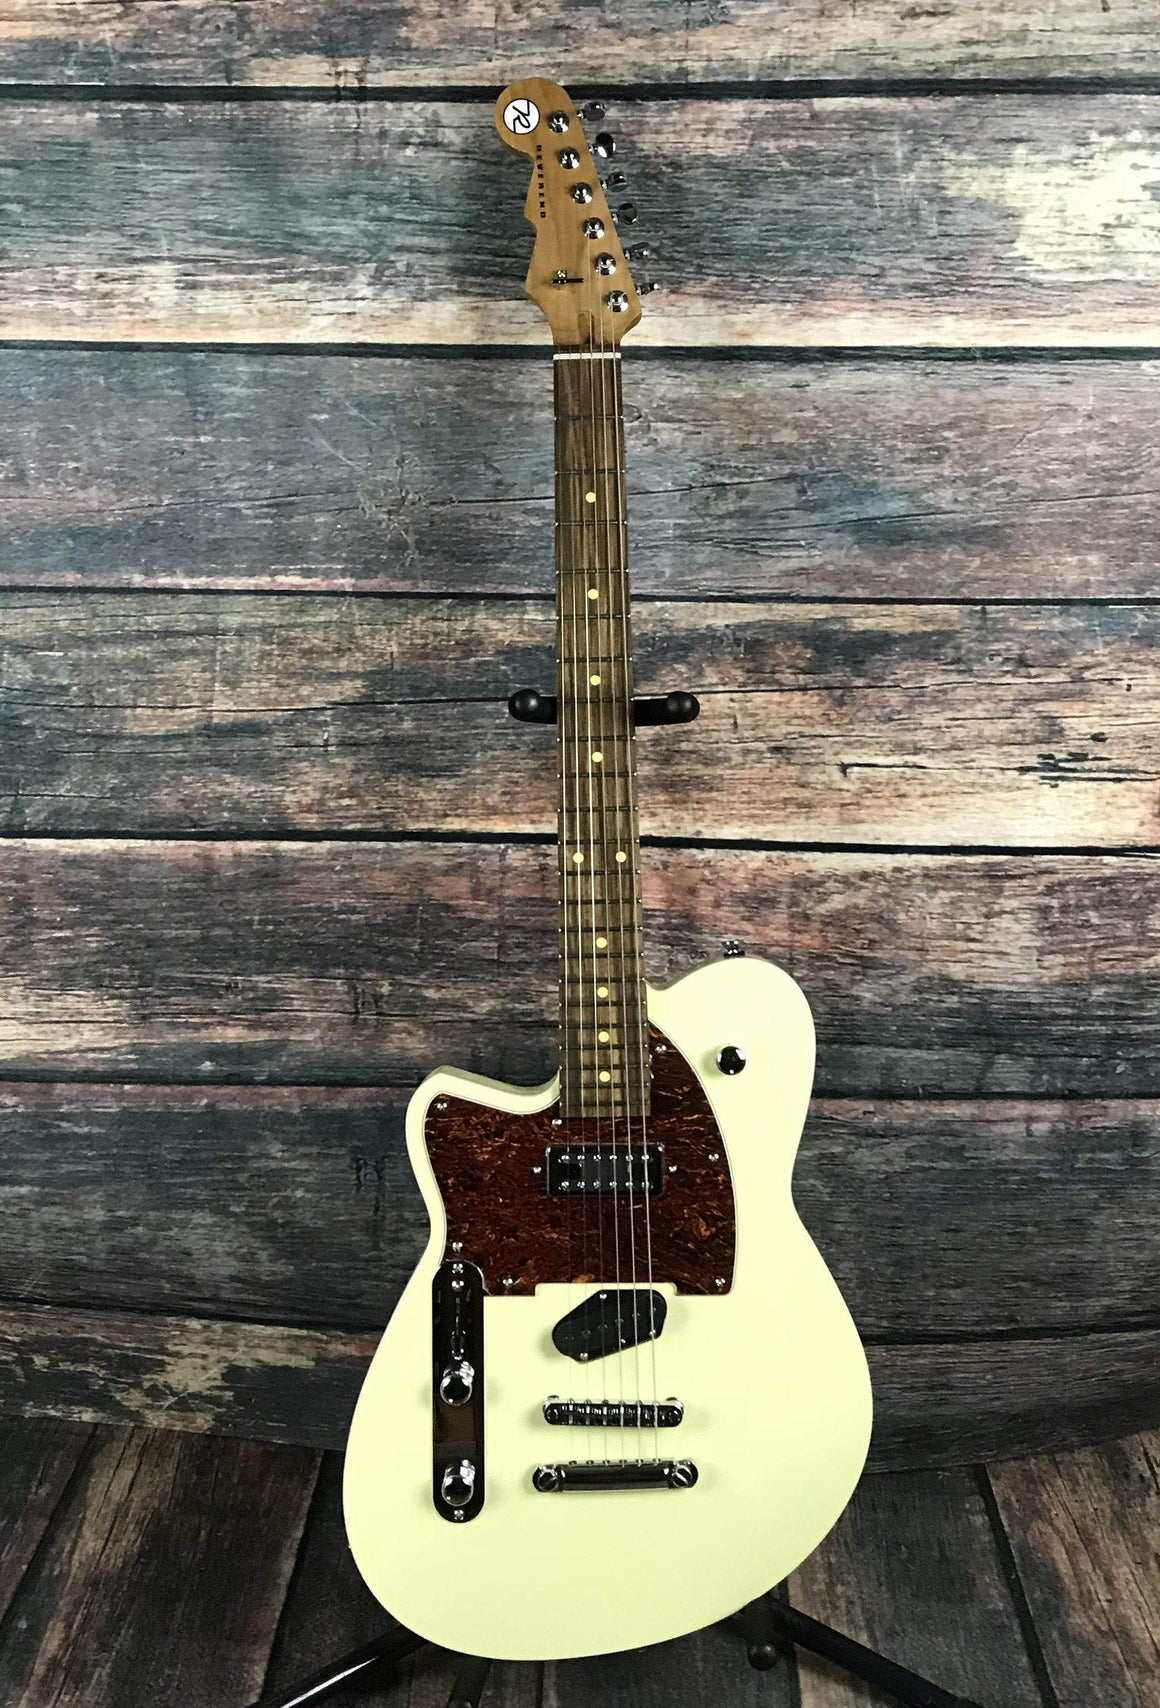 Reverend Electric Guitar Guitar Only Reverend Left Handed Buckshot Electric Guitar